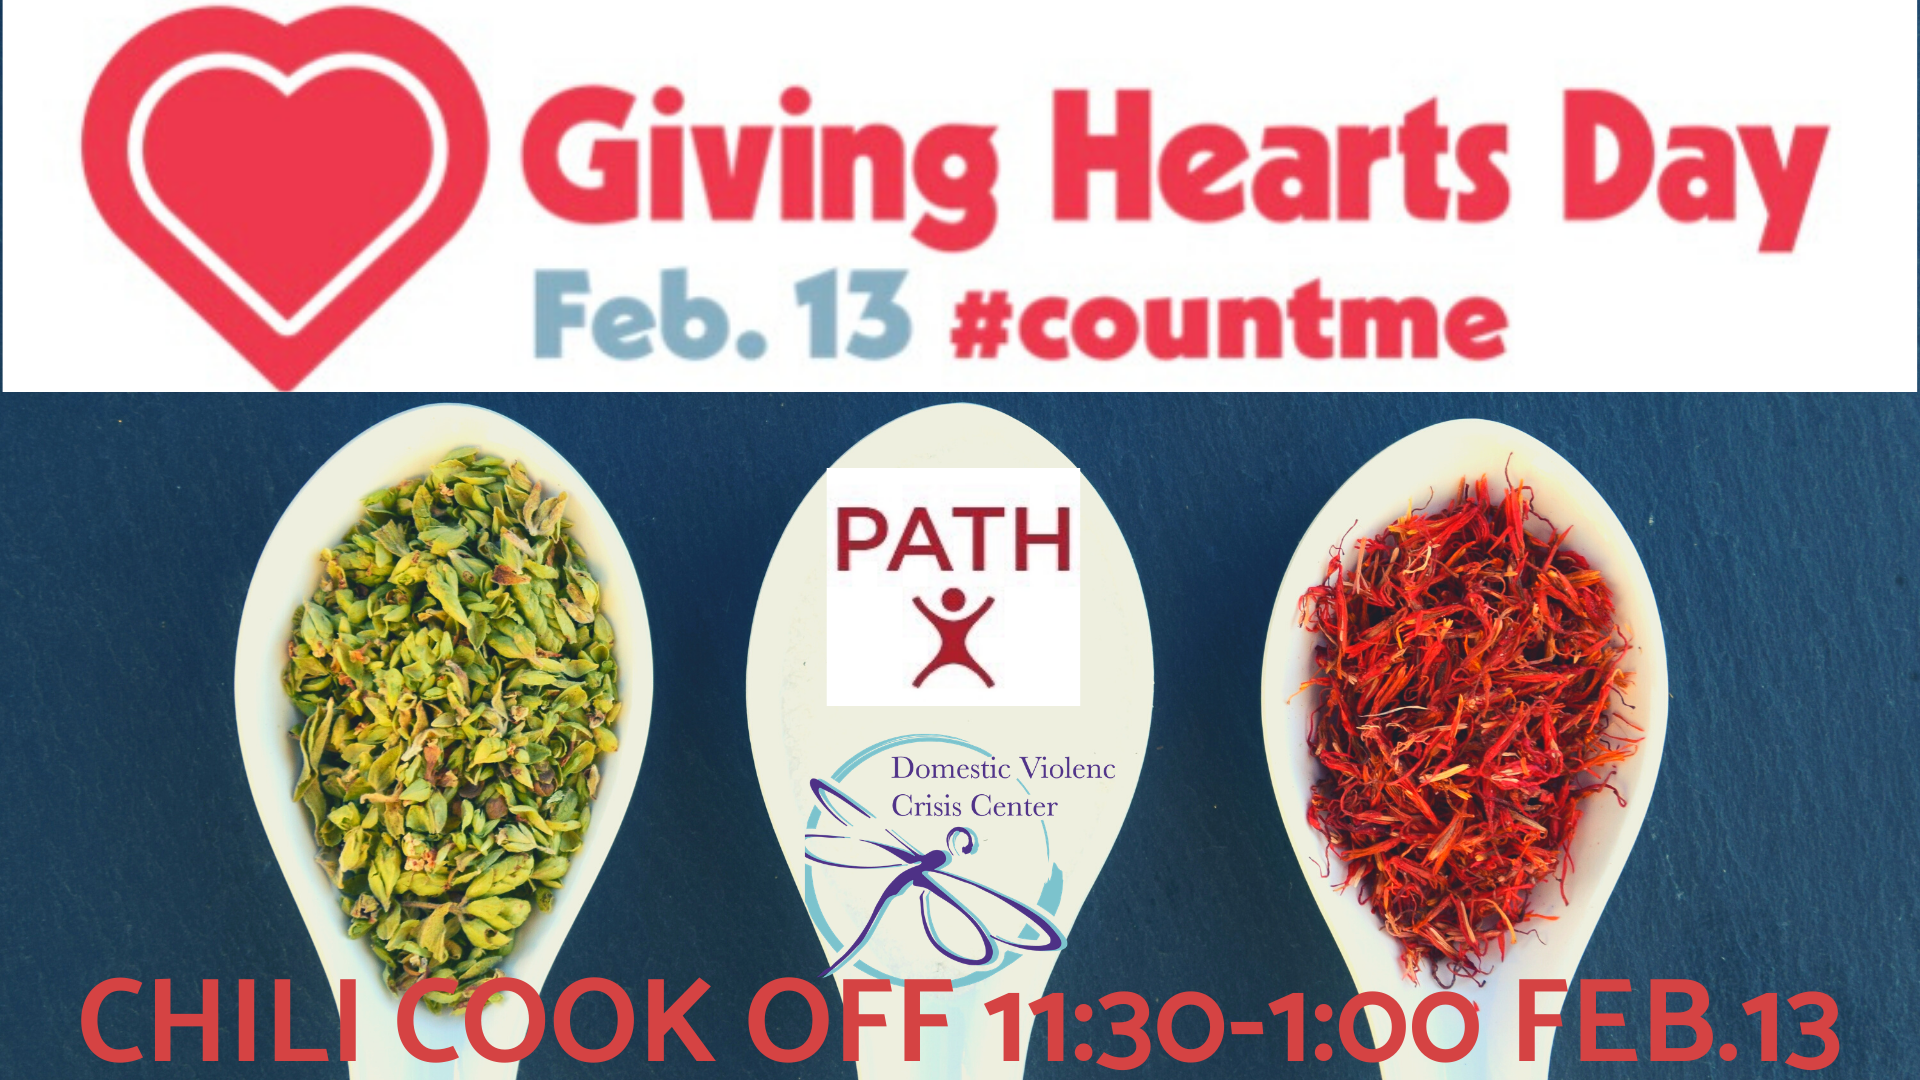 Giving Hearts Day Chili Cook Off